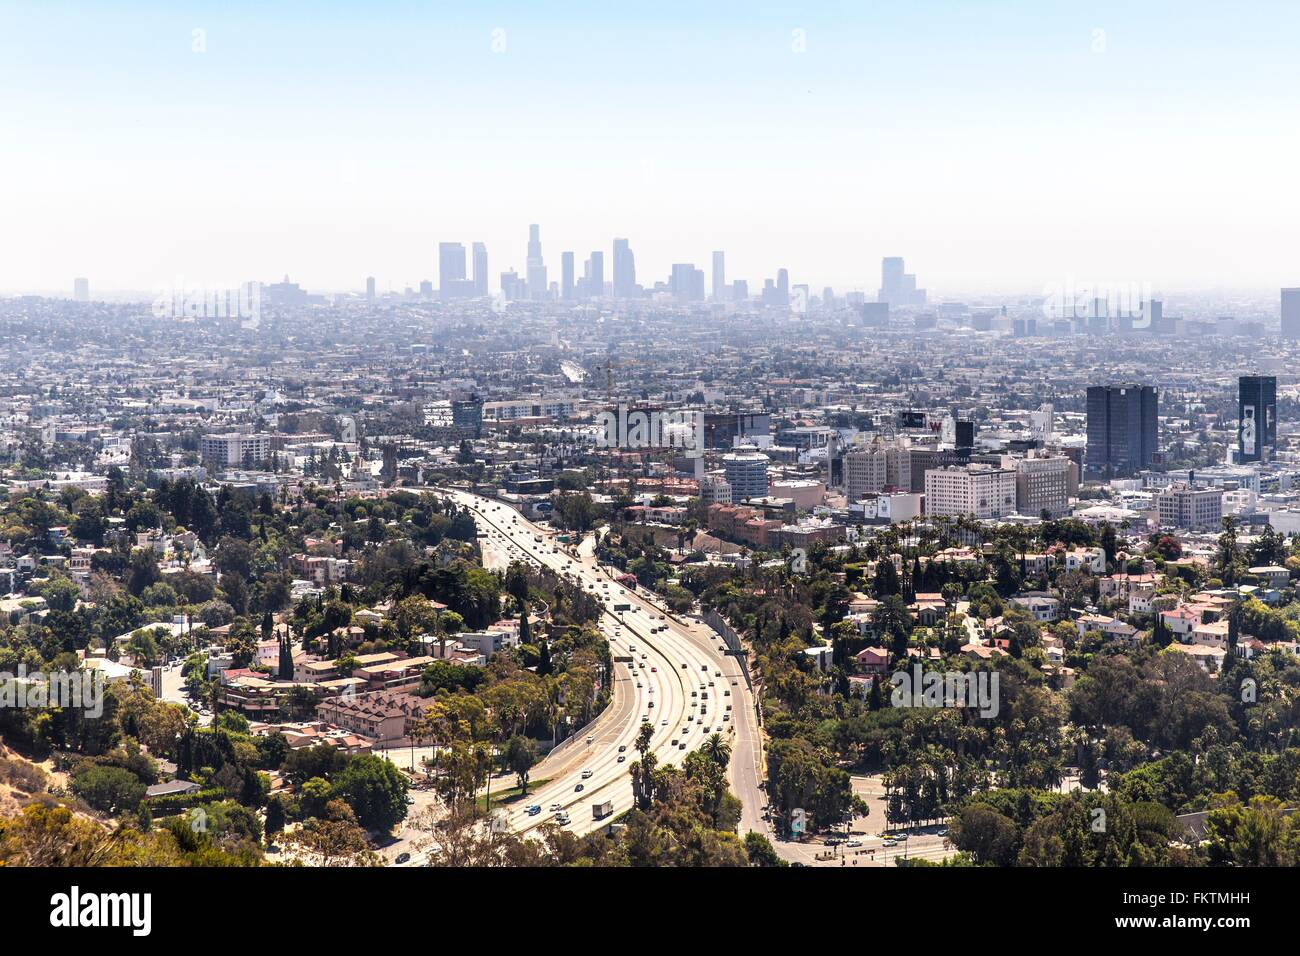 Elevated view of highway curving through urban sprawl, Los Angeles, California, USA - Stock Image